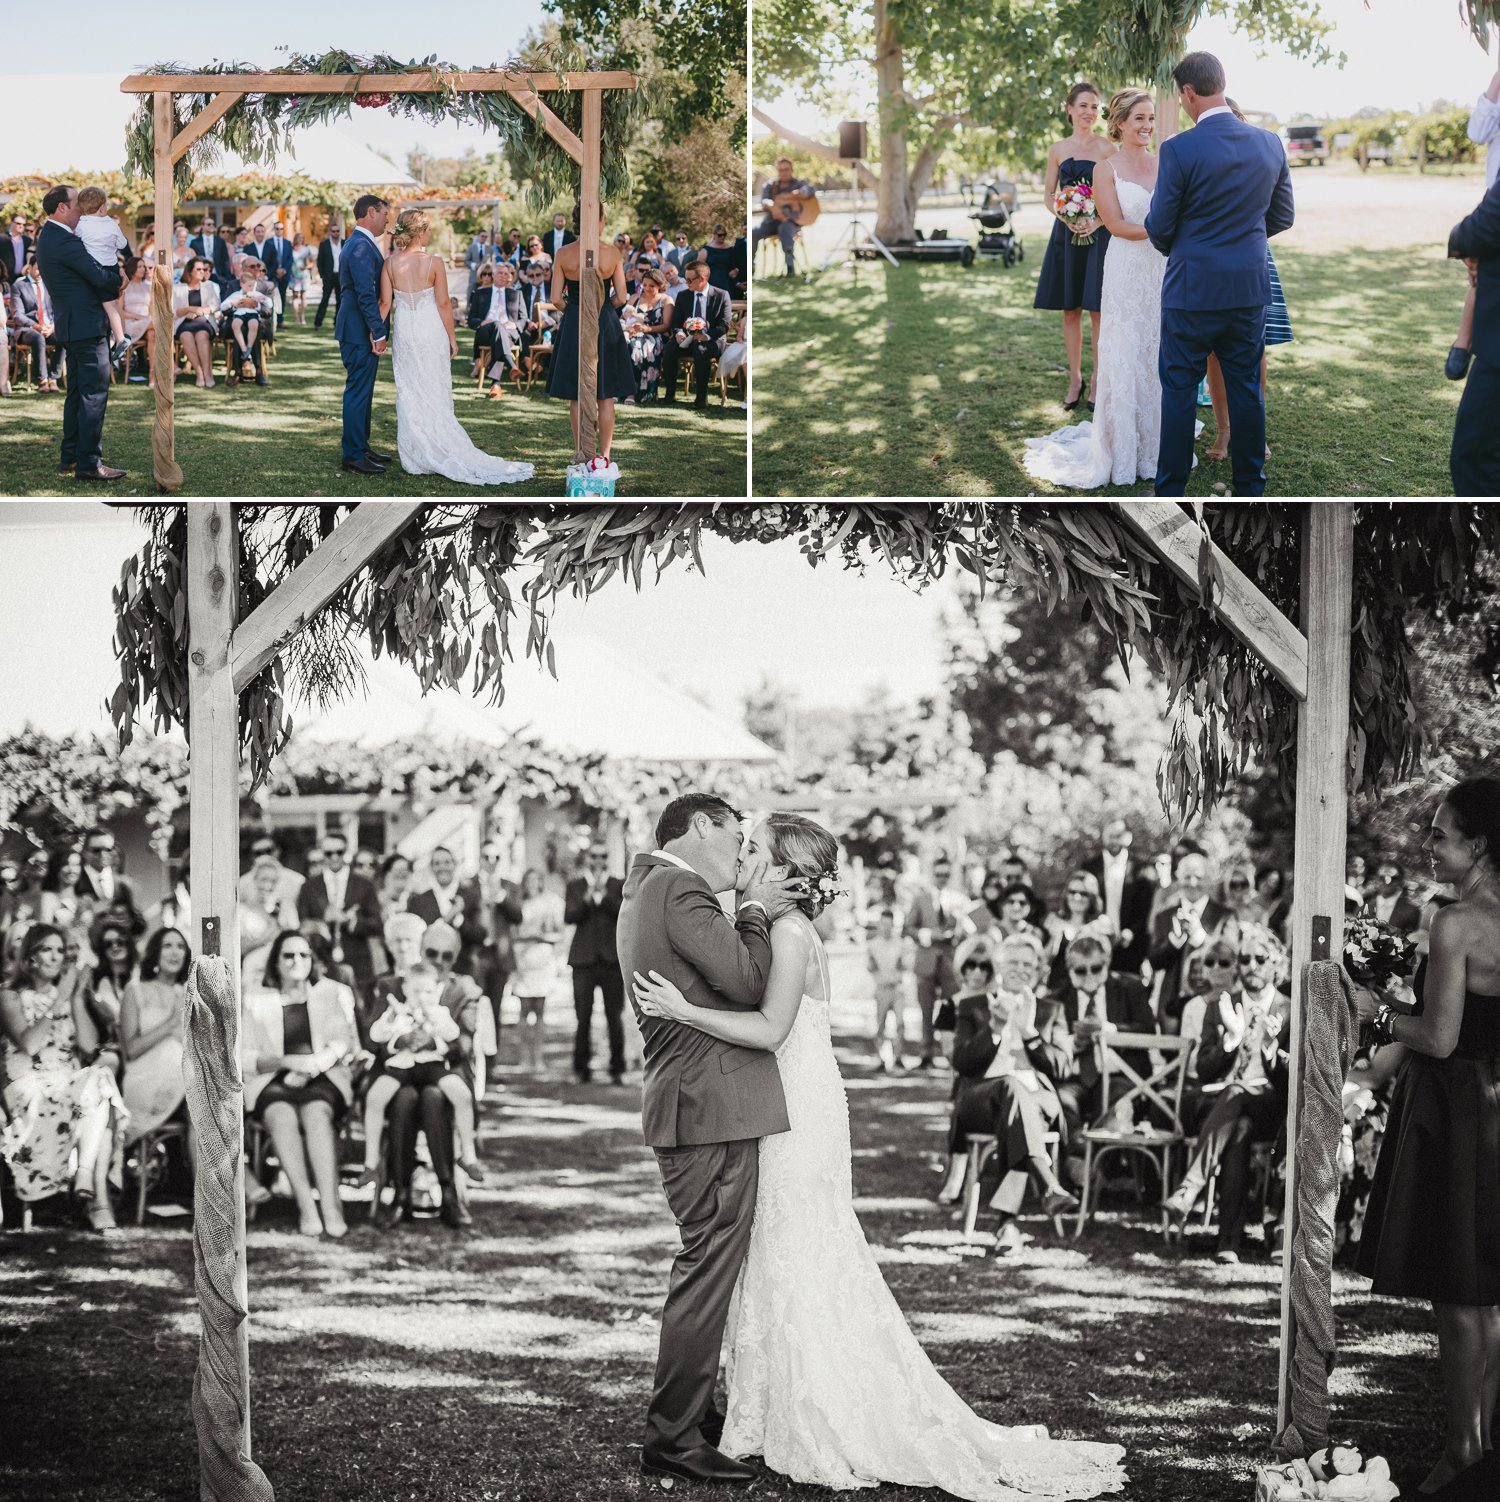 Vinegrove_Mudgee Weding Photography 17.jpg